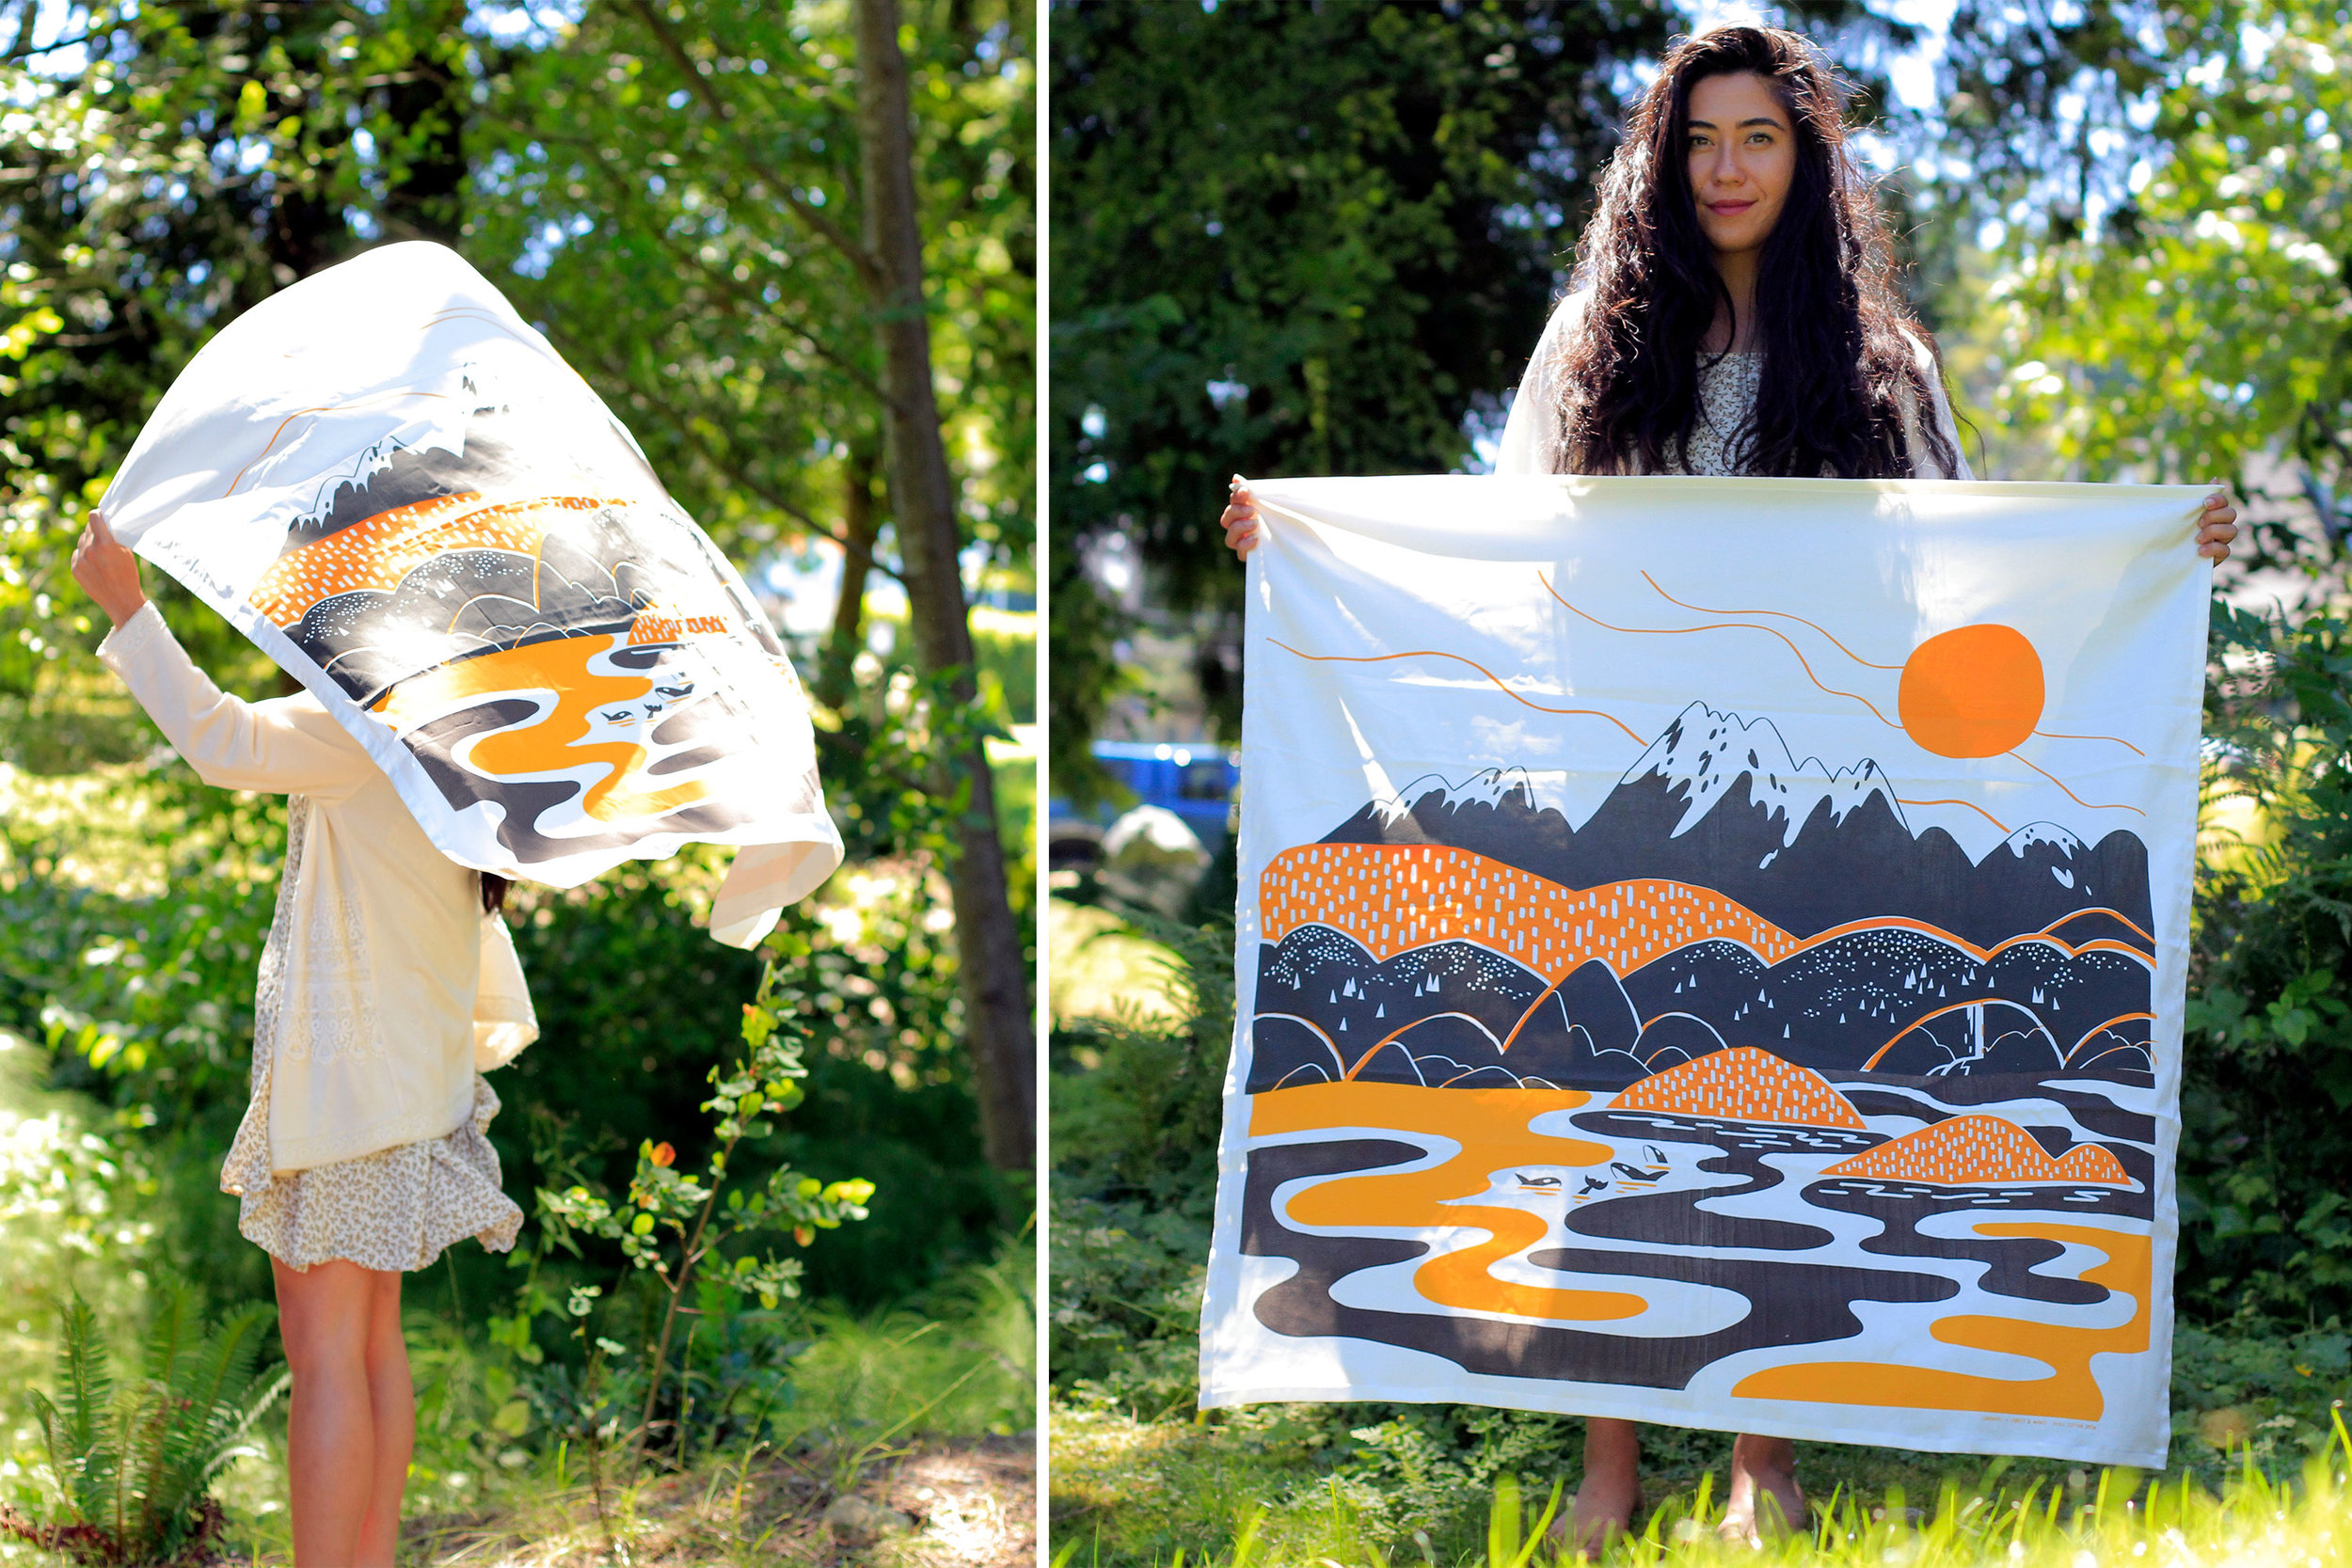 Custom built screens were made to produce these large tapestries.